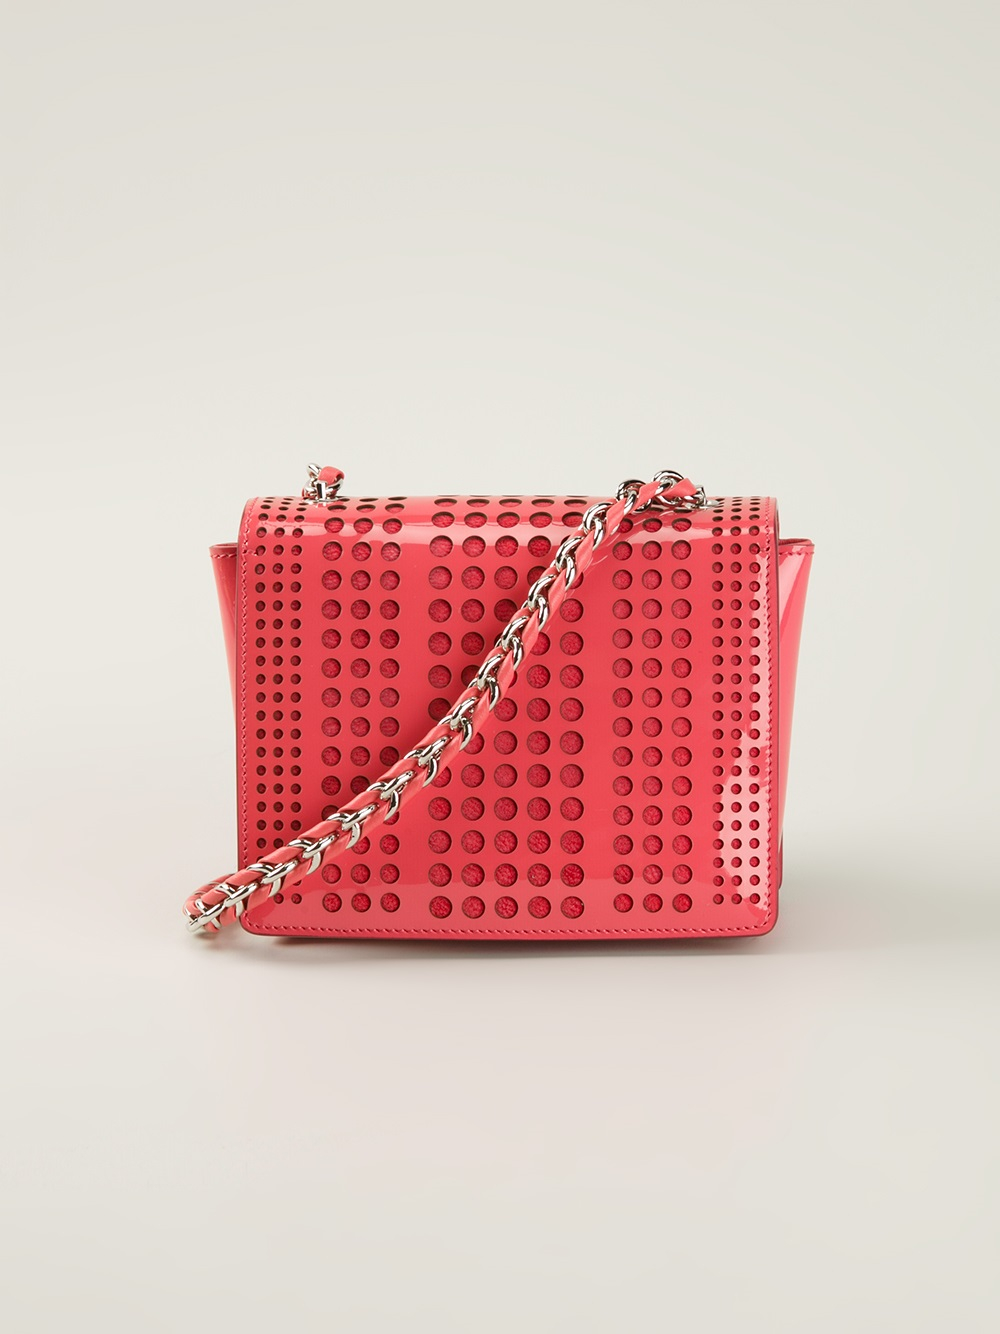 Ferragamo Ginny Perforated Cross Body Bag in Red - Lyst b9cce2c8e3c45